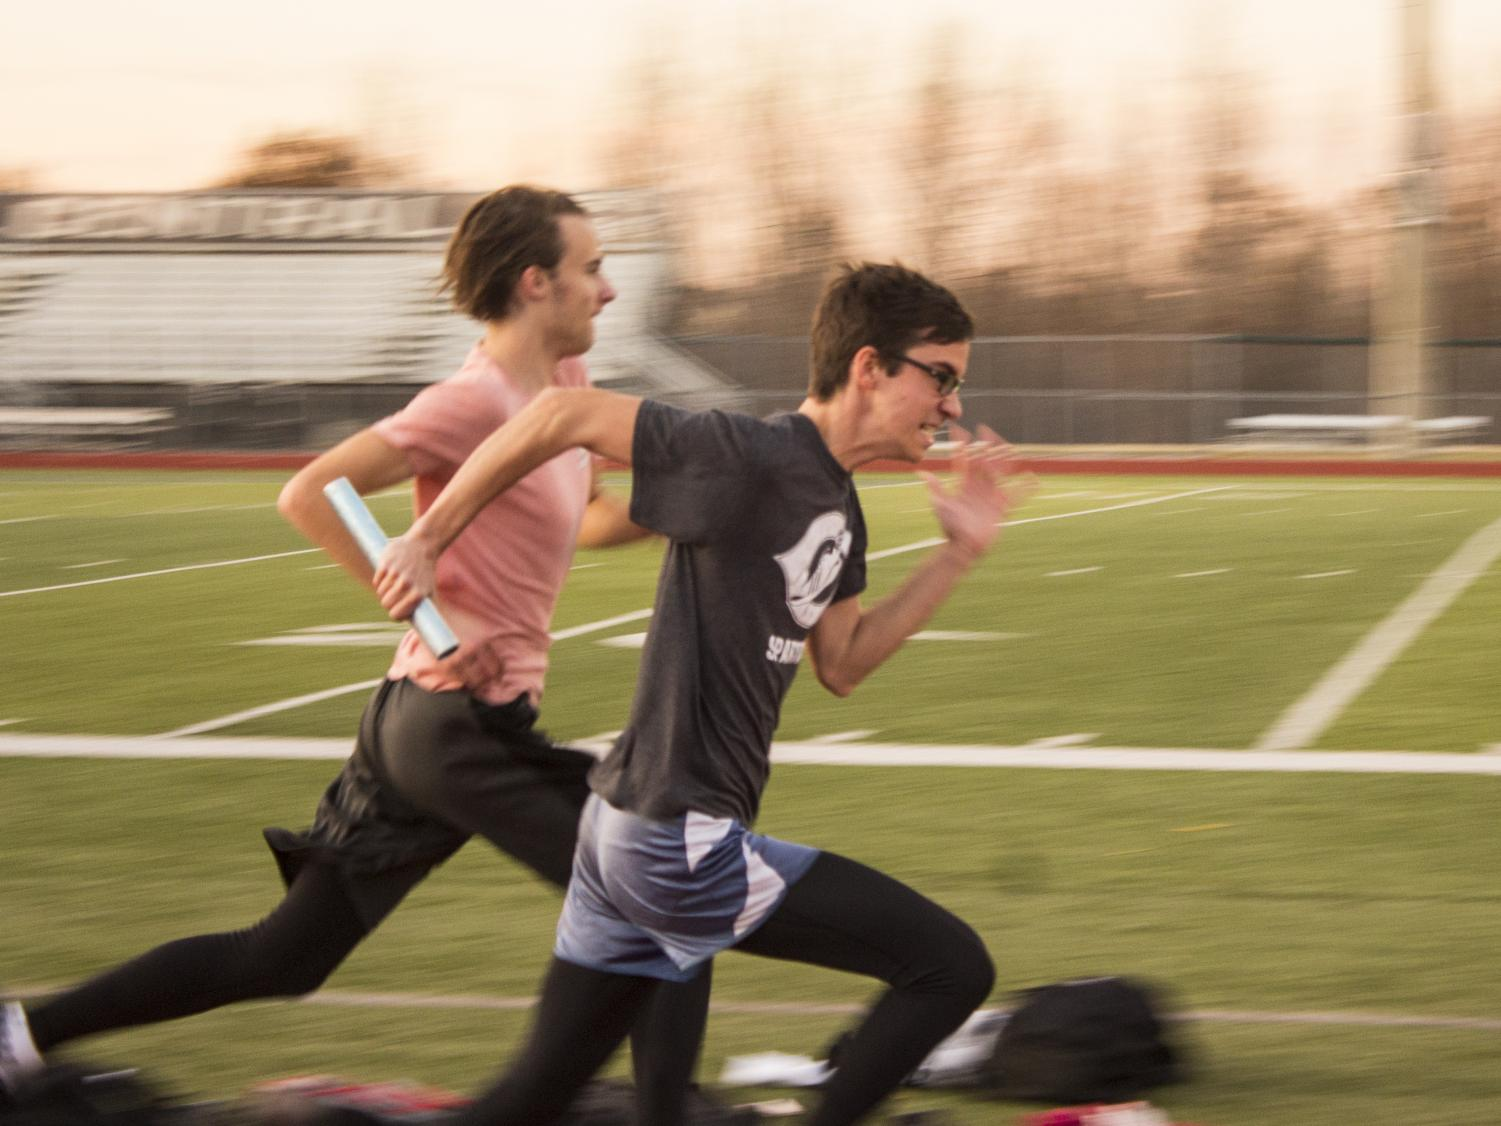 """OFF-SEASON SPRINTING: Eli Allen and Reed Easterling perform handoffs with a baton. """"My biggest goal is just to stay in shape and to get myself better so that during track season I can get better and better times,"""" Easterling said."""